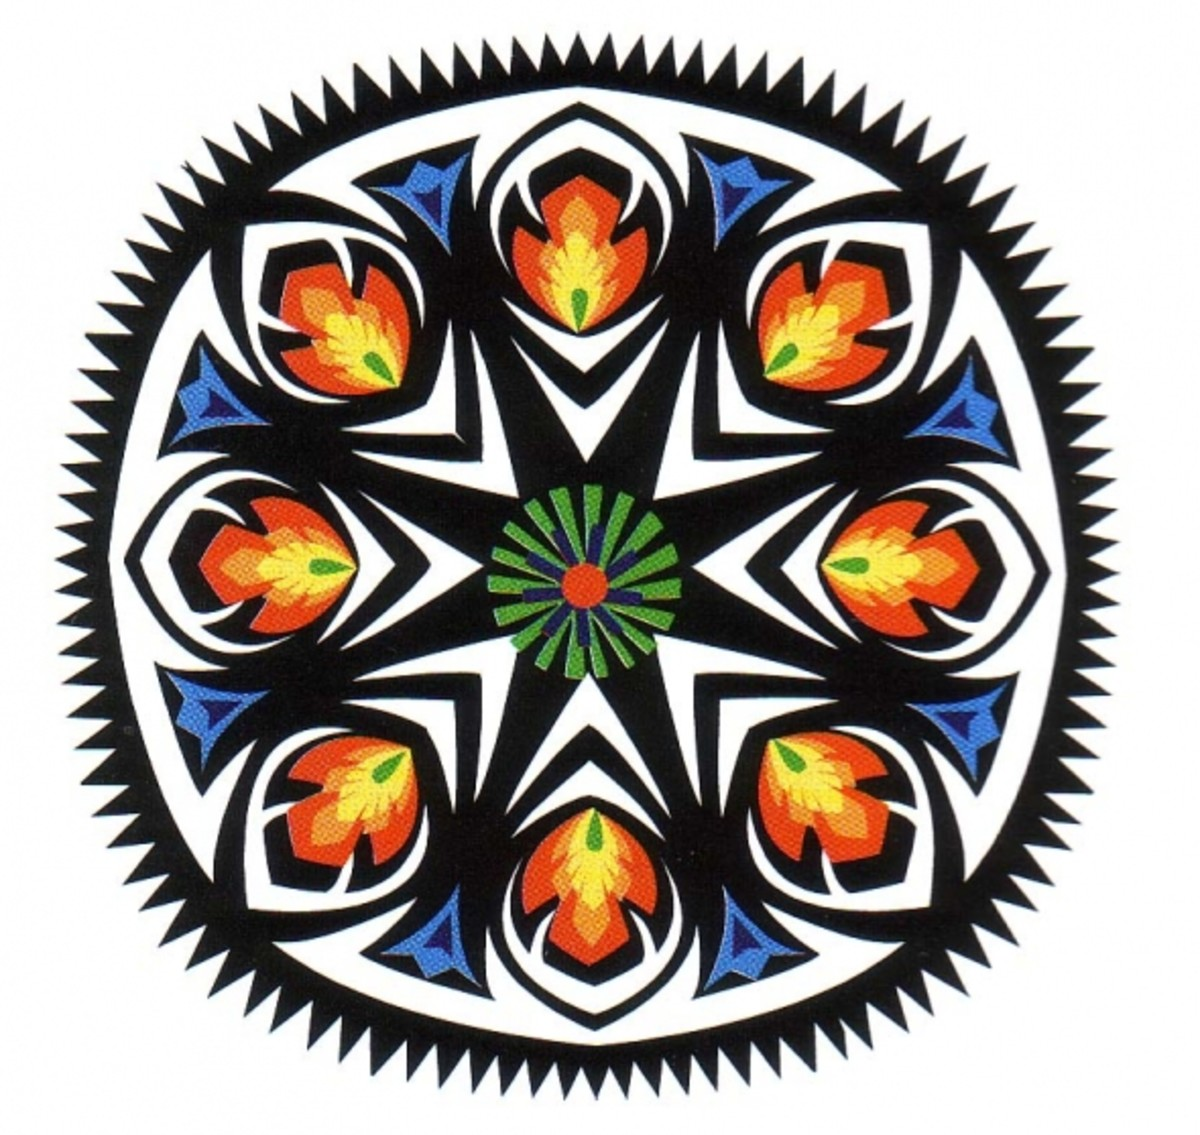 This is an example of a multicolored Gwiazda (GVYA-zdah) design with 8 repeats. Multicolored Gwiazda design are traditional to the Lowicz region of Poland.